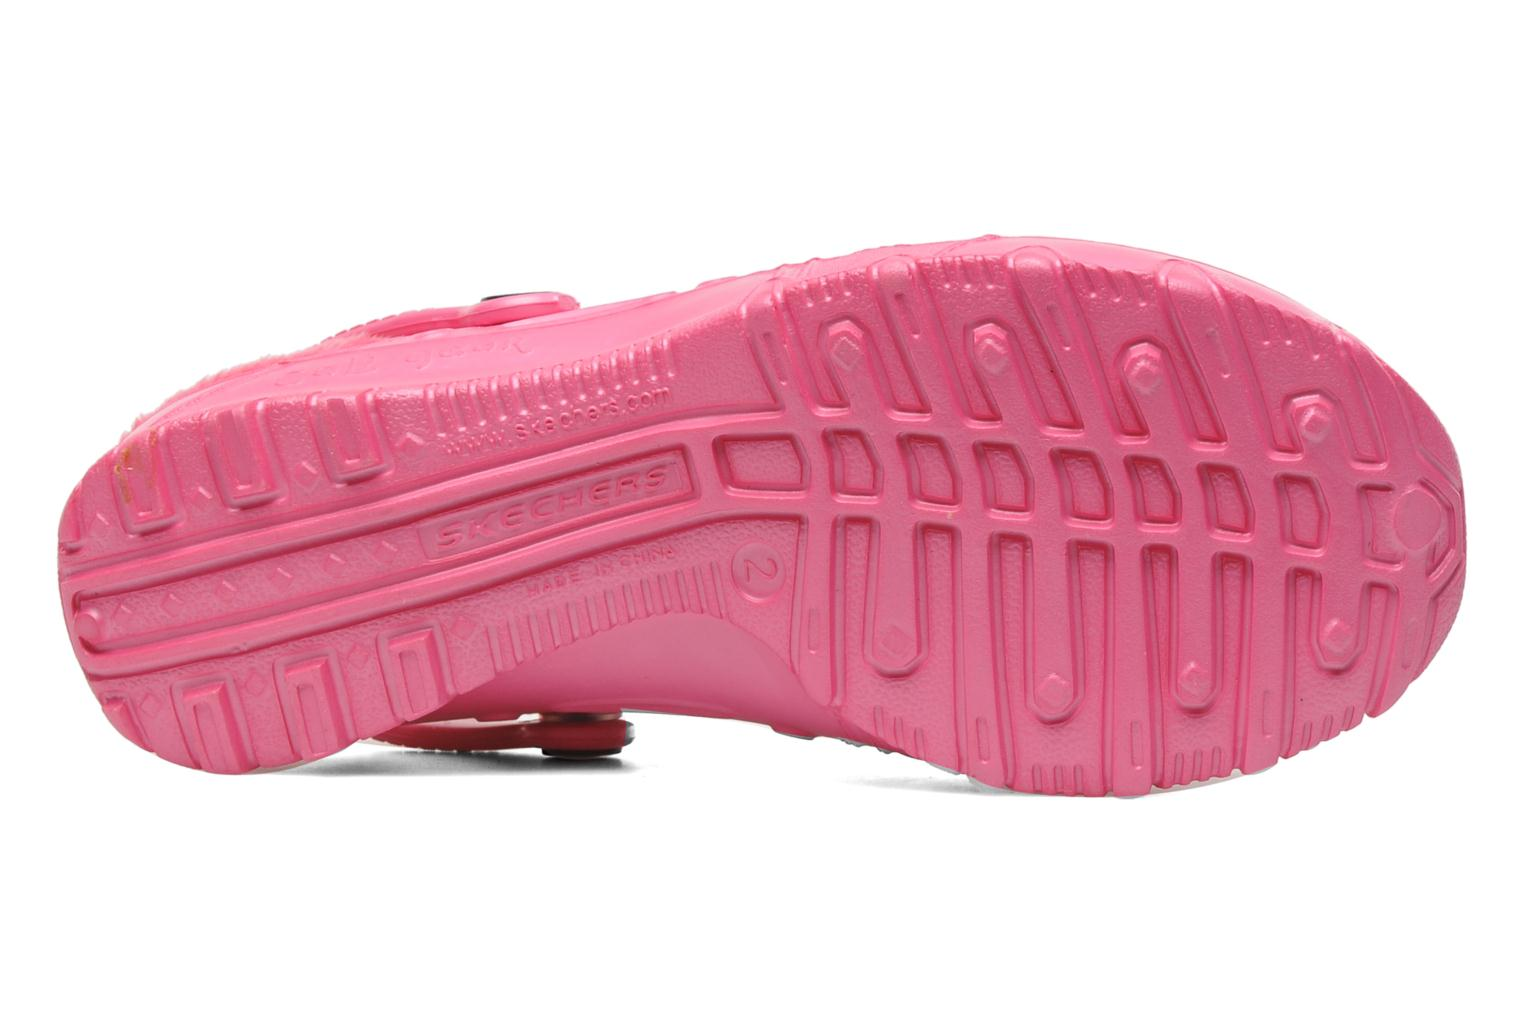 Sandals Skechers Cali Gear Darling E Pink view from above